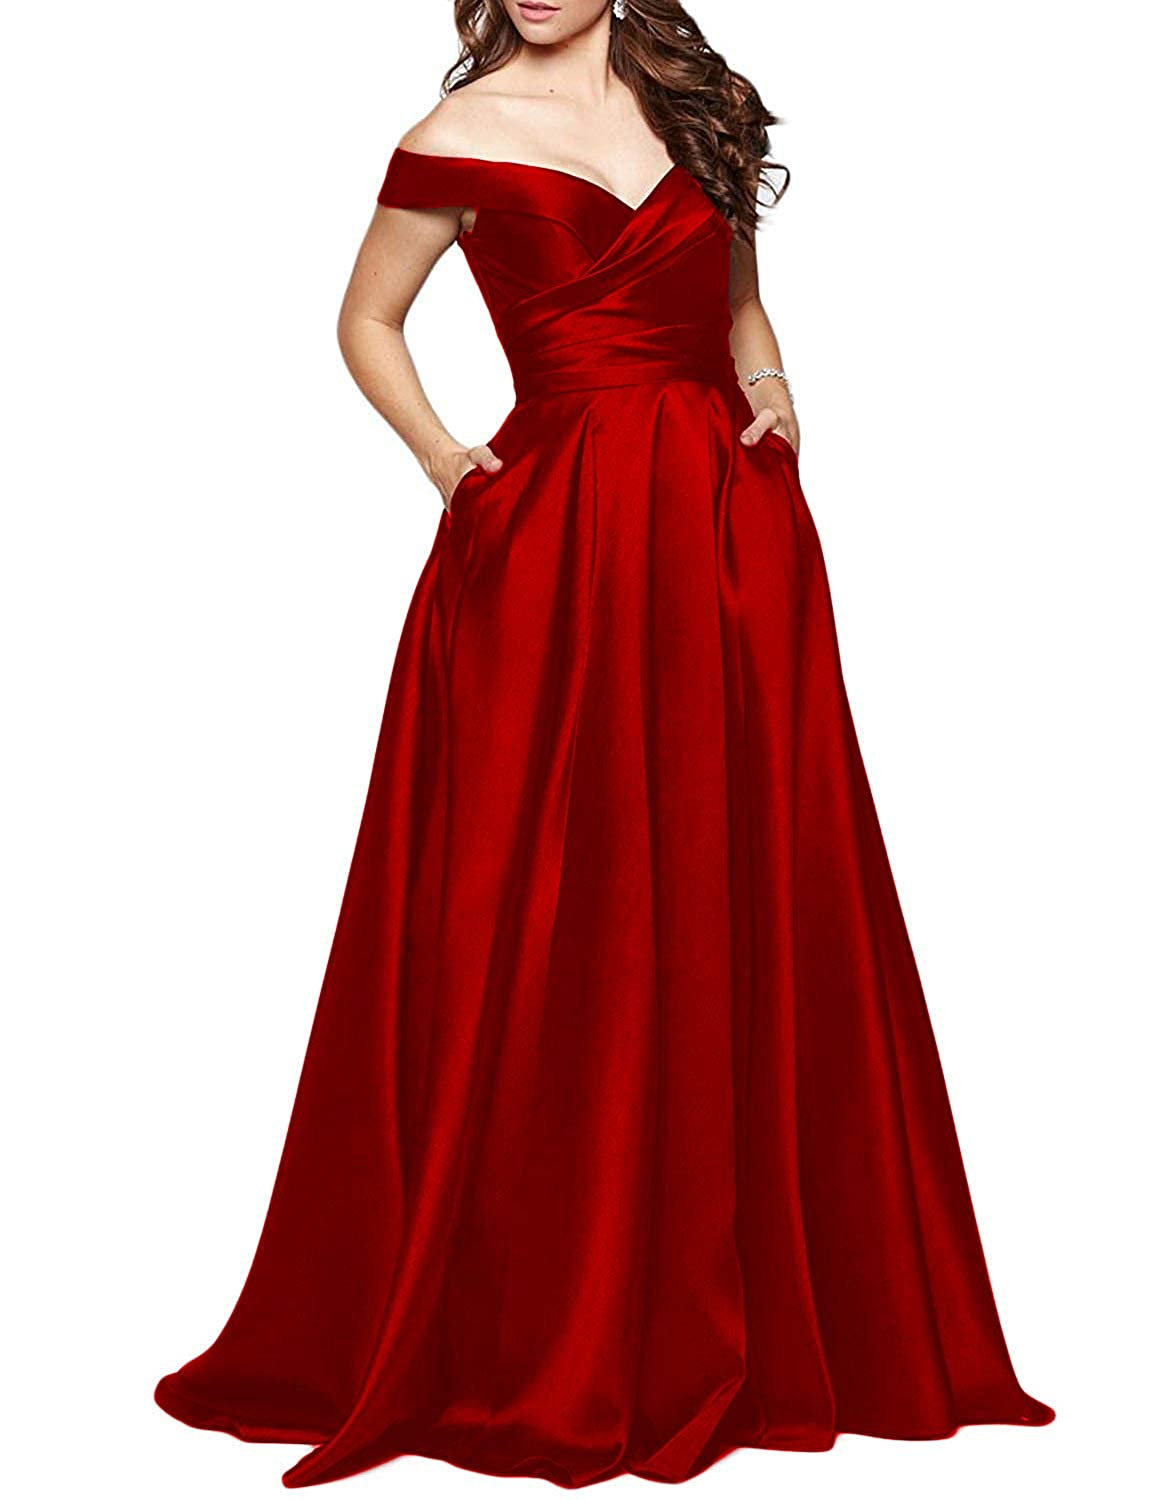 Burgundy PromC Women Off Shoulder Prom Dresses 2019 Long Formal Wedding Bridesmaid Gown P005